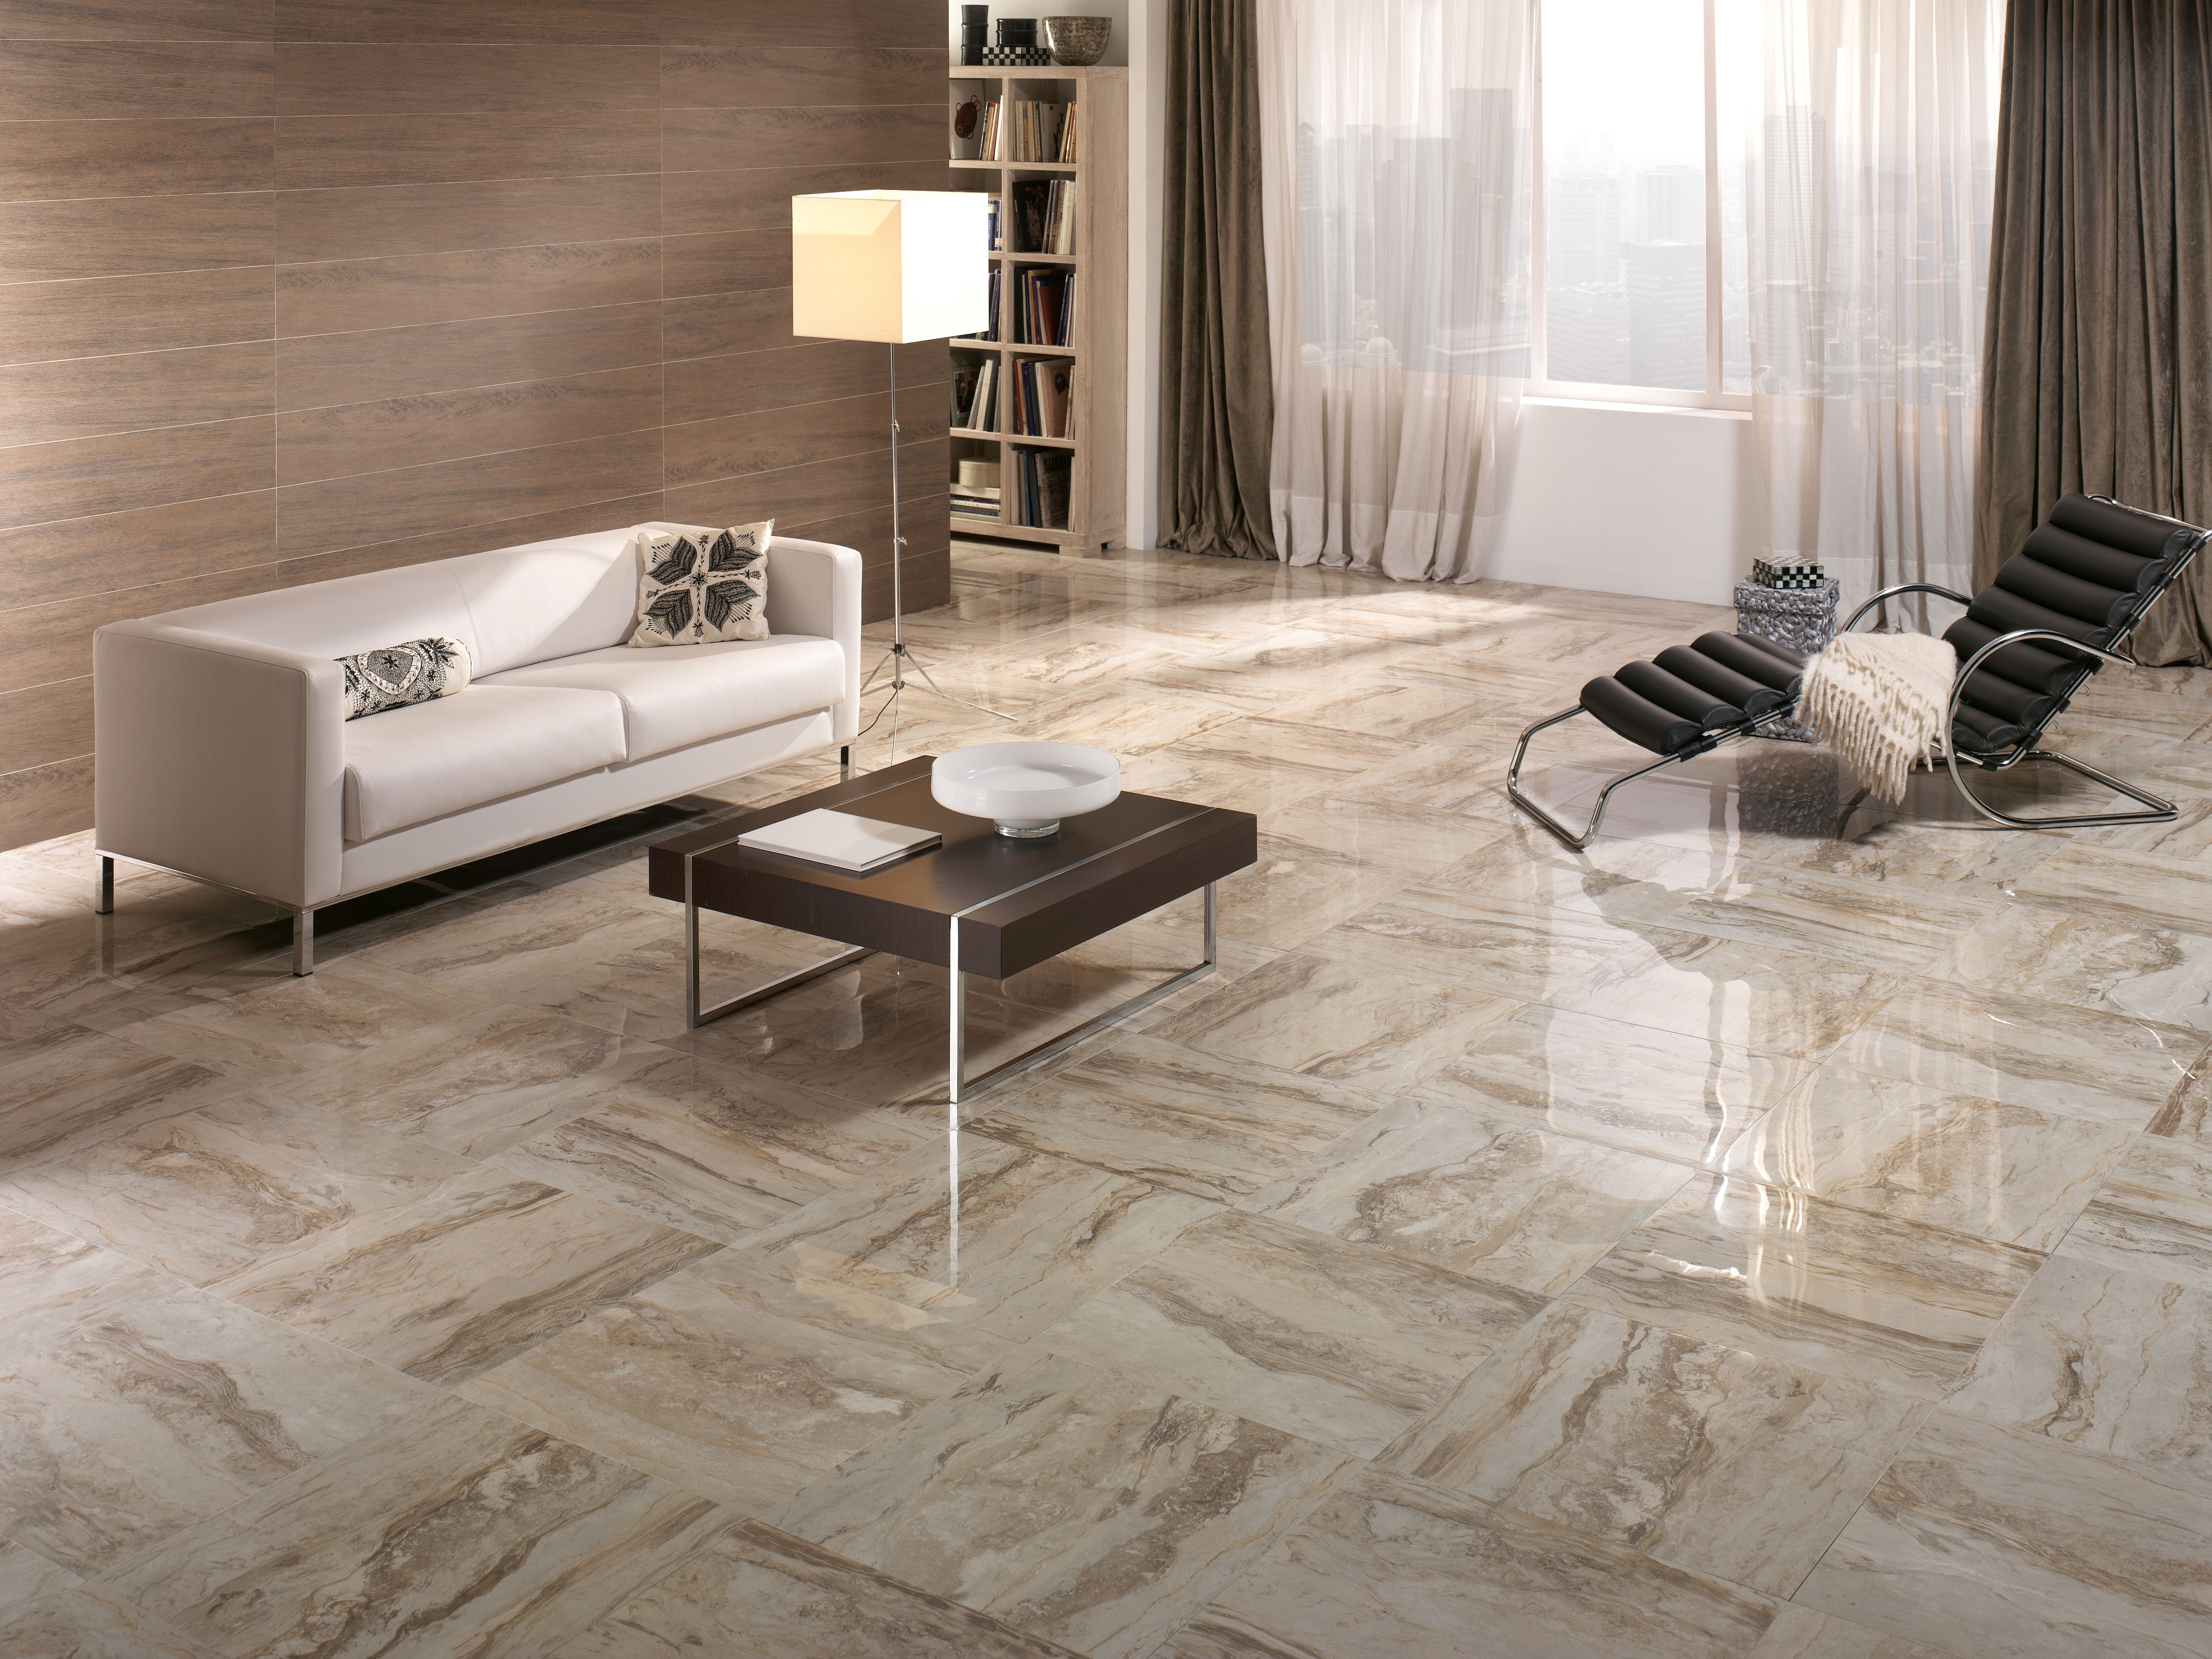 Tile that looks like marble - Manufacturer Grespania Tile Of Spain Product Namibia Looks Like Marble But More Durable